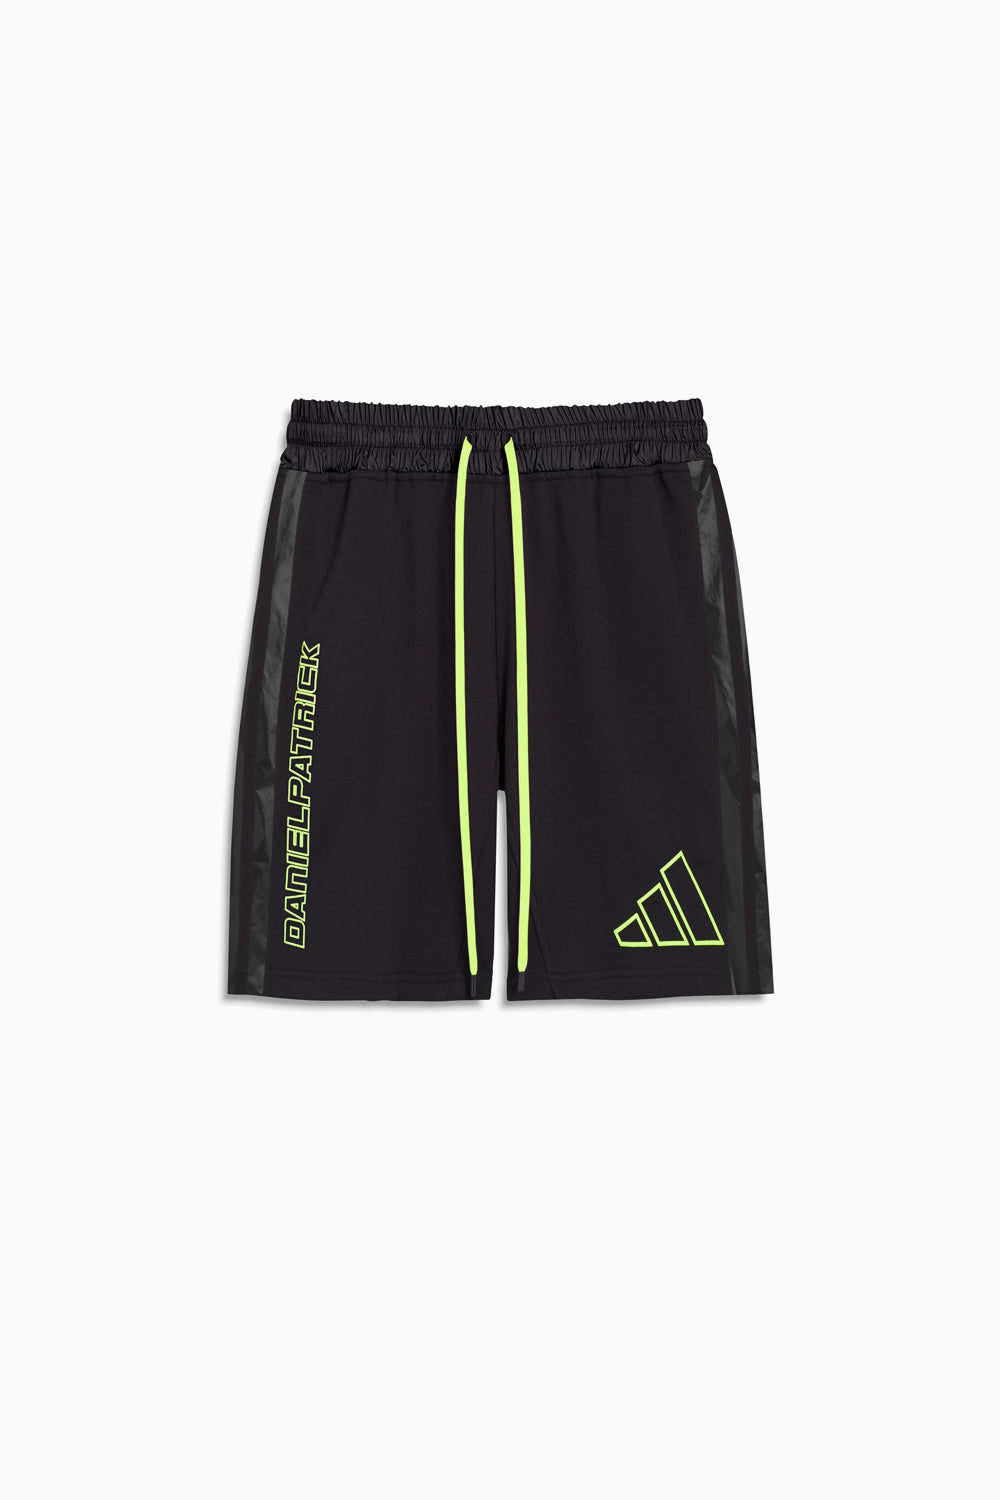 DP x James Harden x Adidas short / black + neon